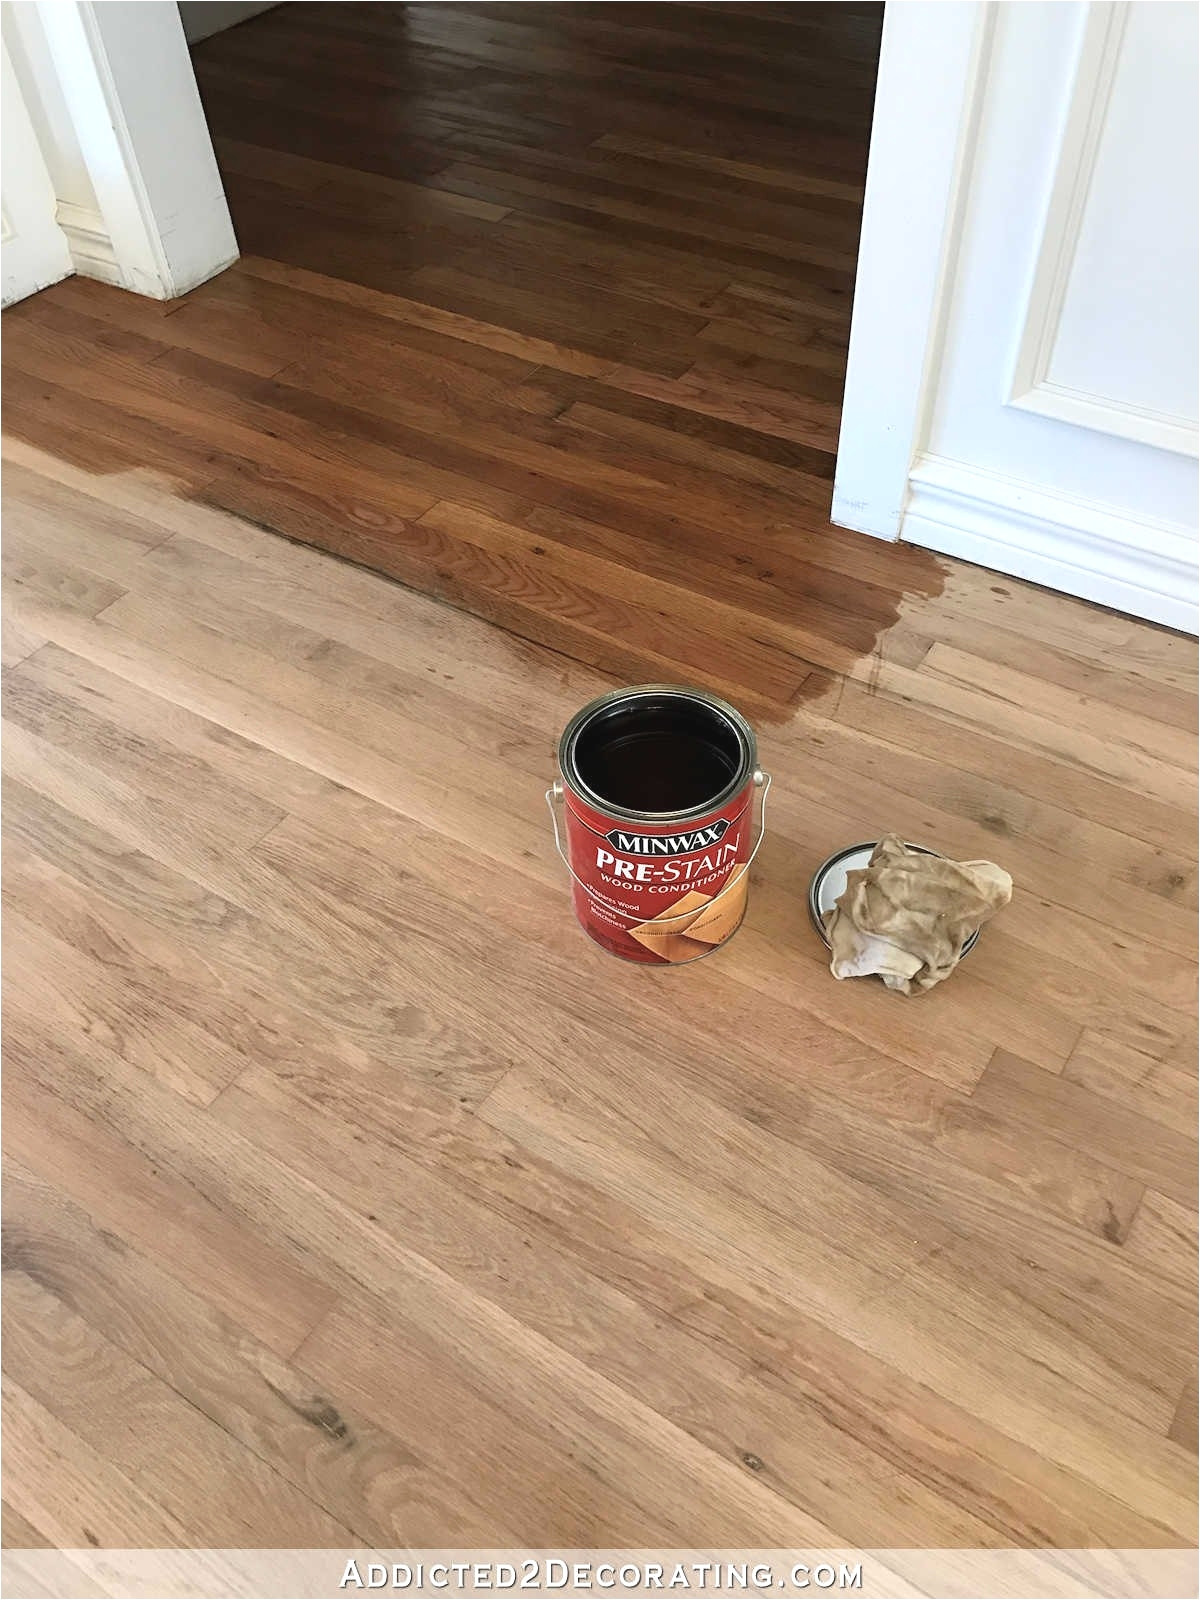 distressed hardwood flooring ontario of flooring discount is a flooring company in simi valley ca discount with what to use to deep clean hardwood floors beautiful discount discount flooring com